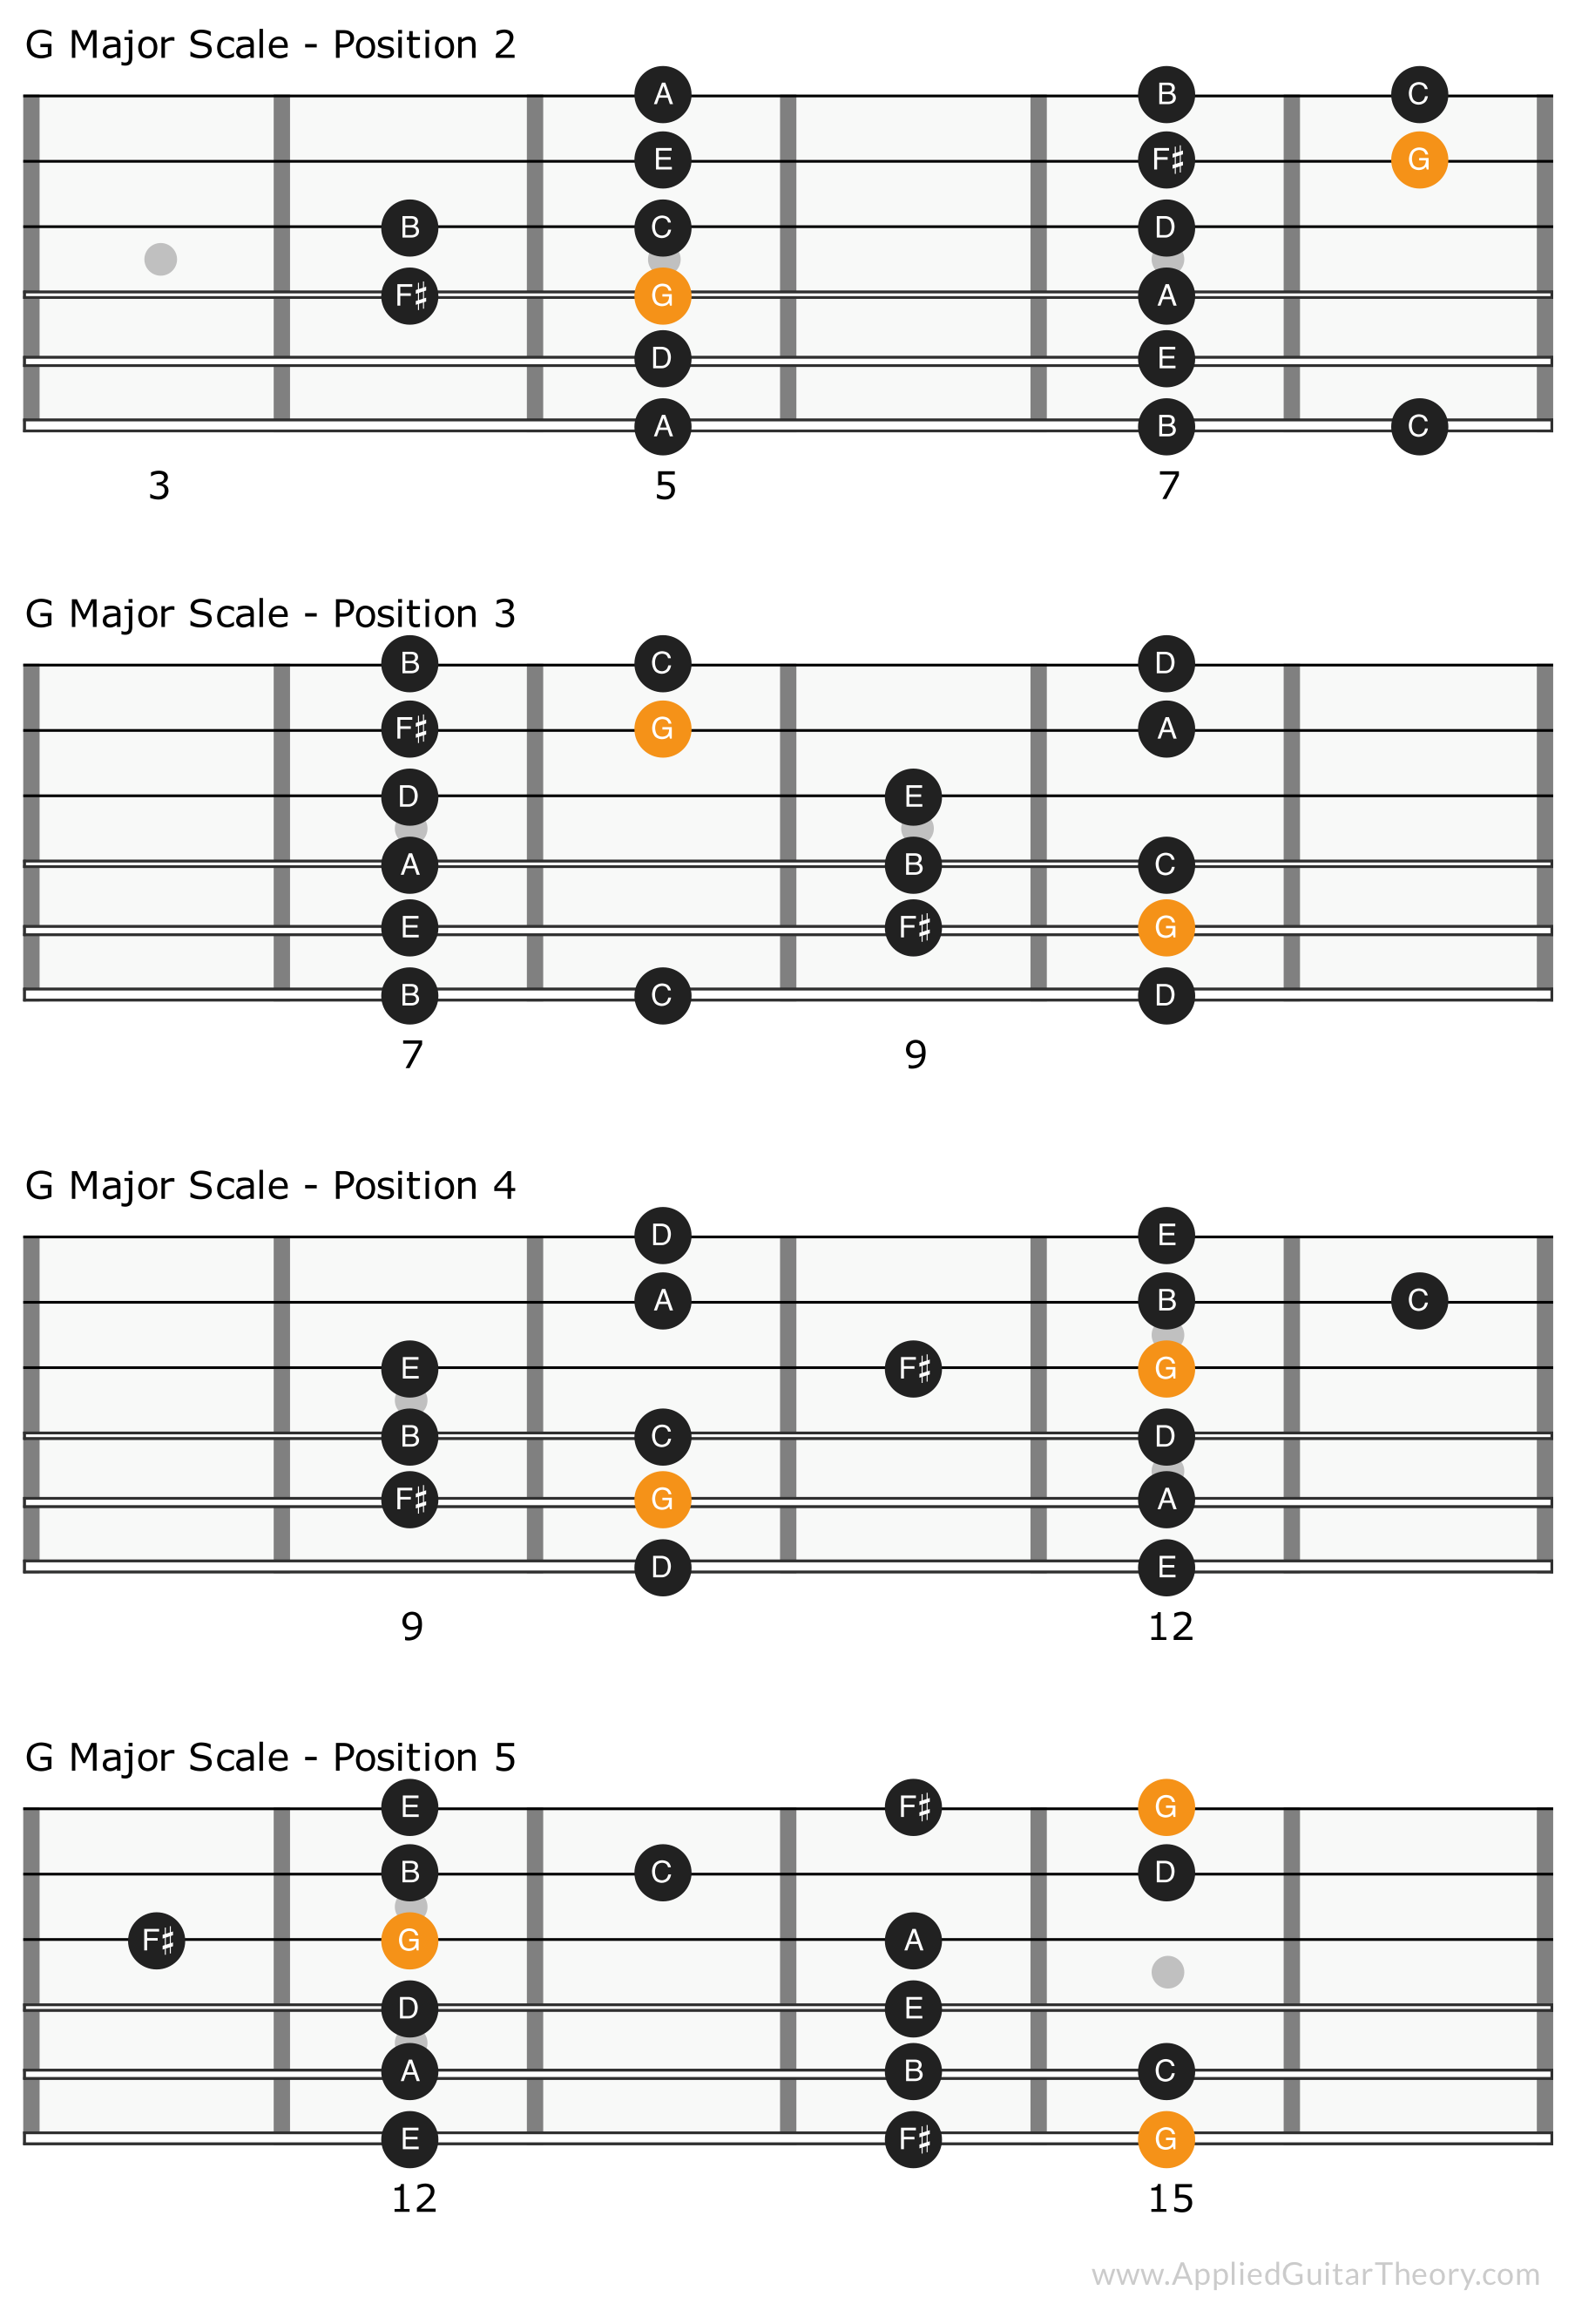 G Major Scale Positions 2 - 5